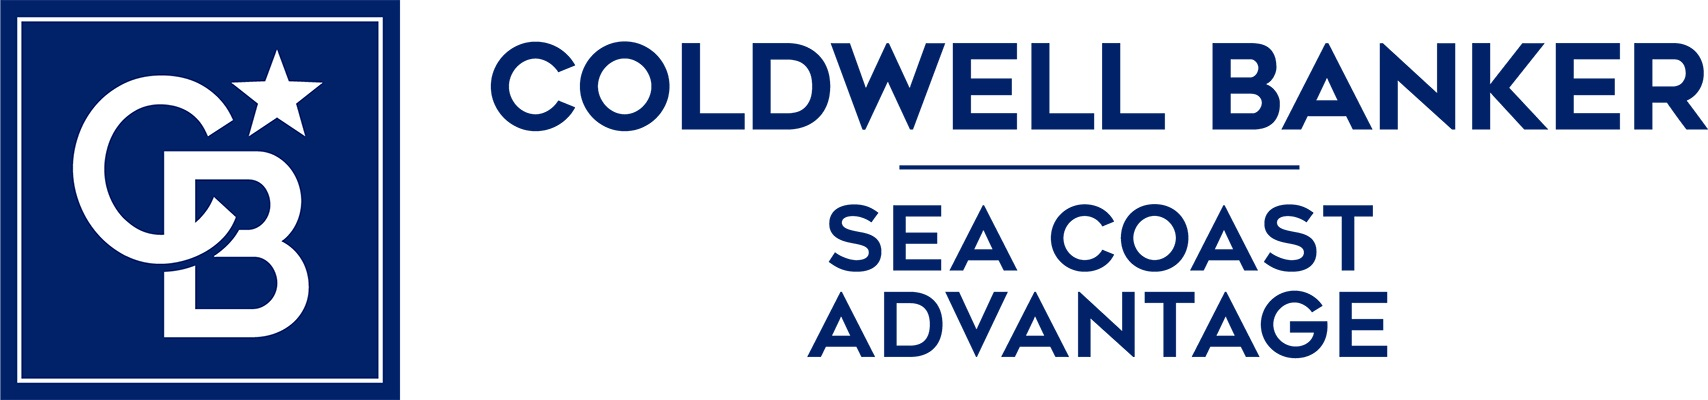 Matthew Sanchez - Coldwell Banker Sea Coast Advantage Realty